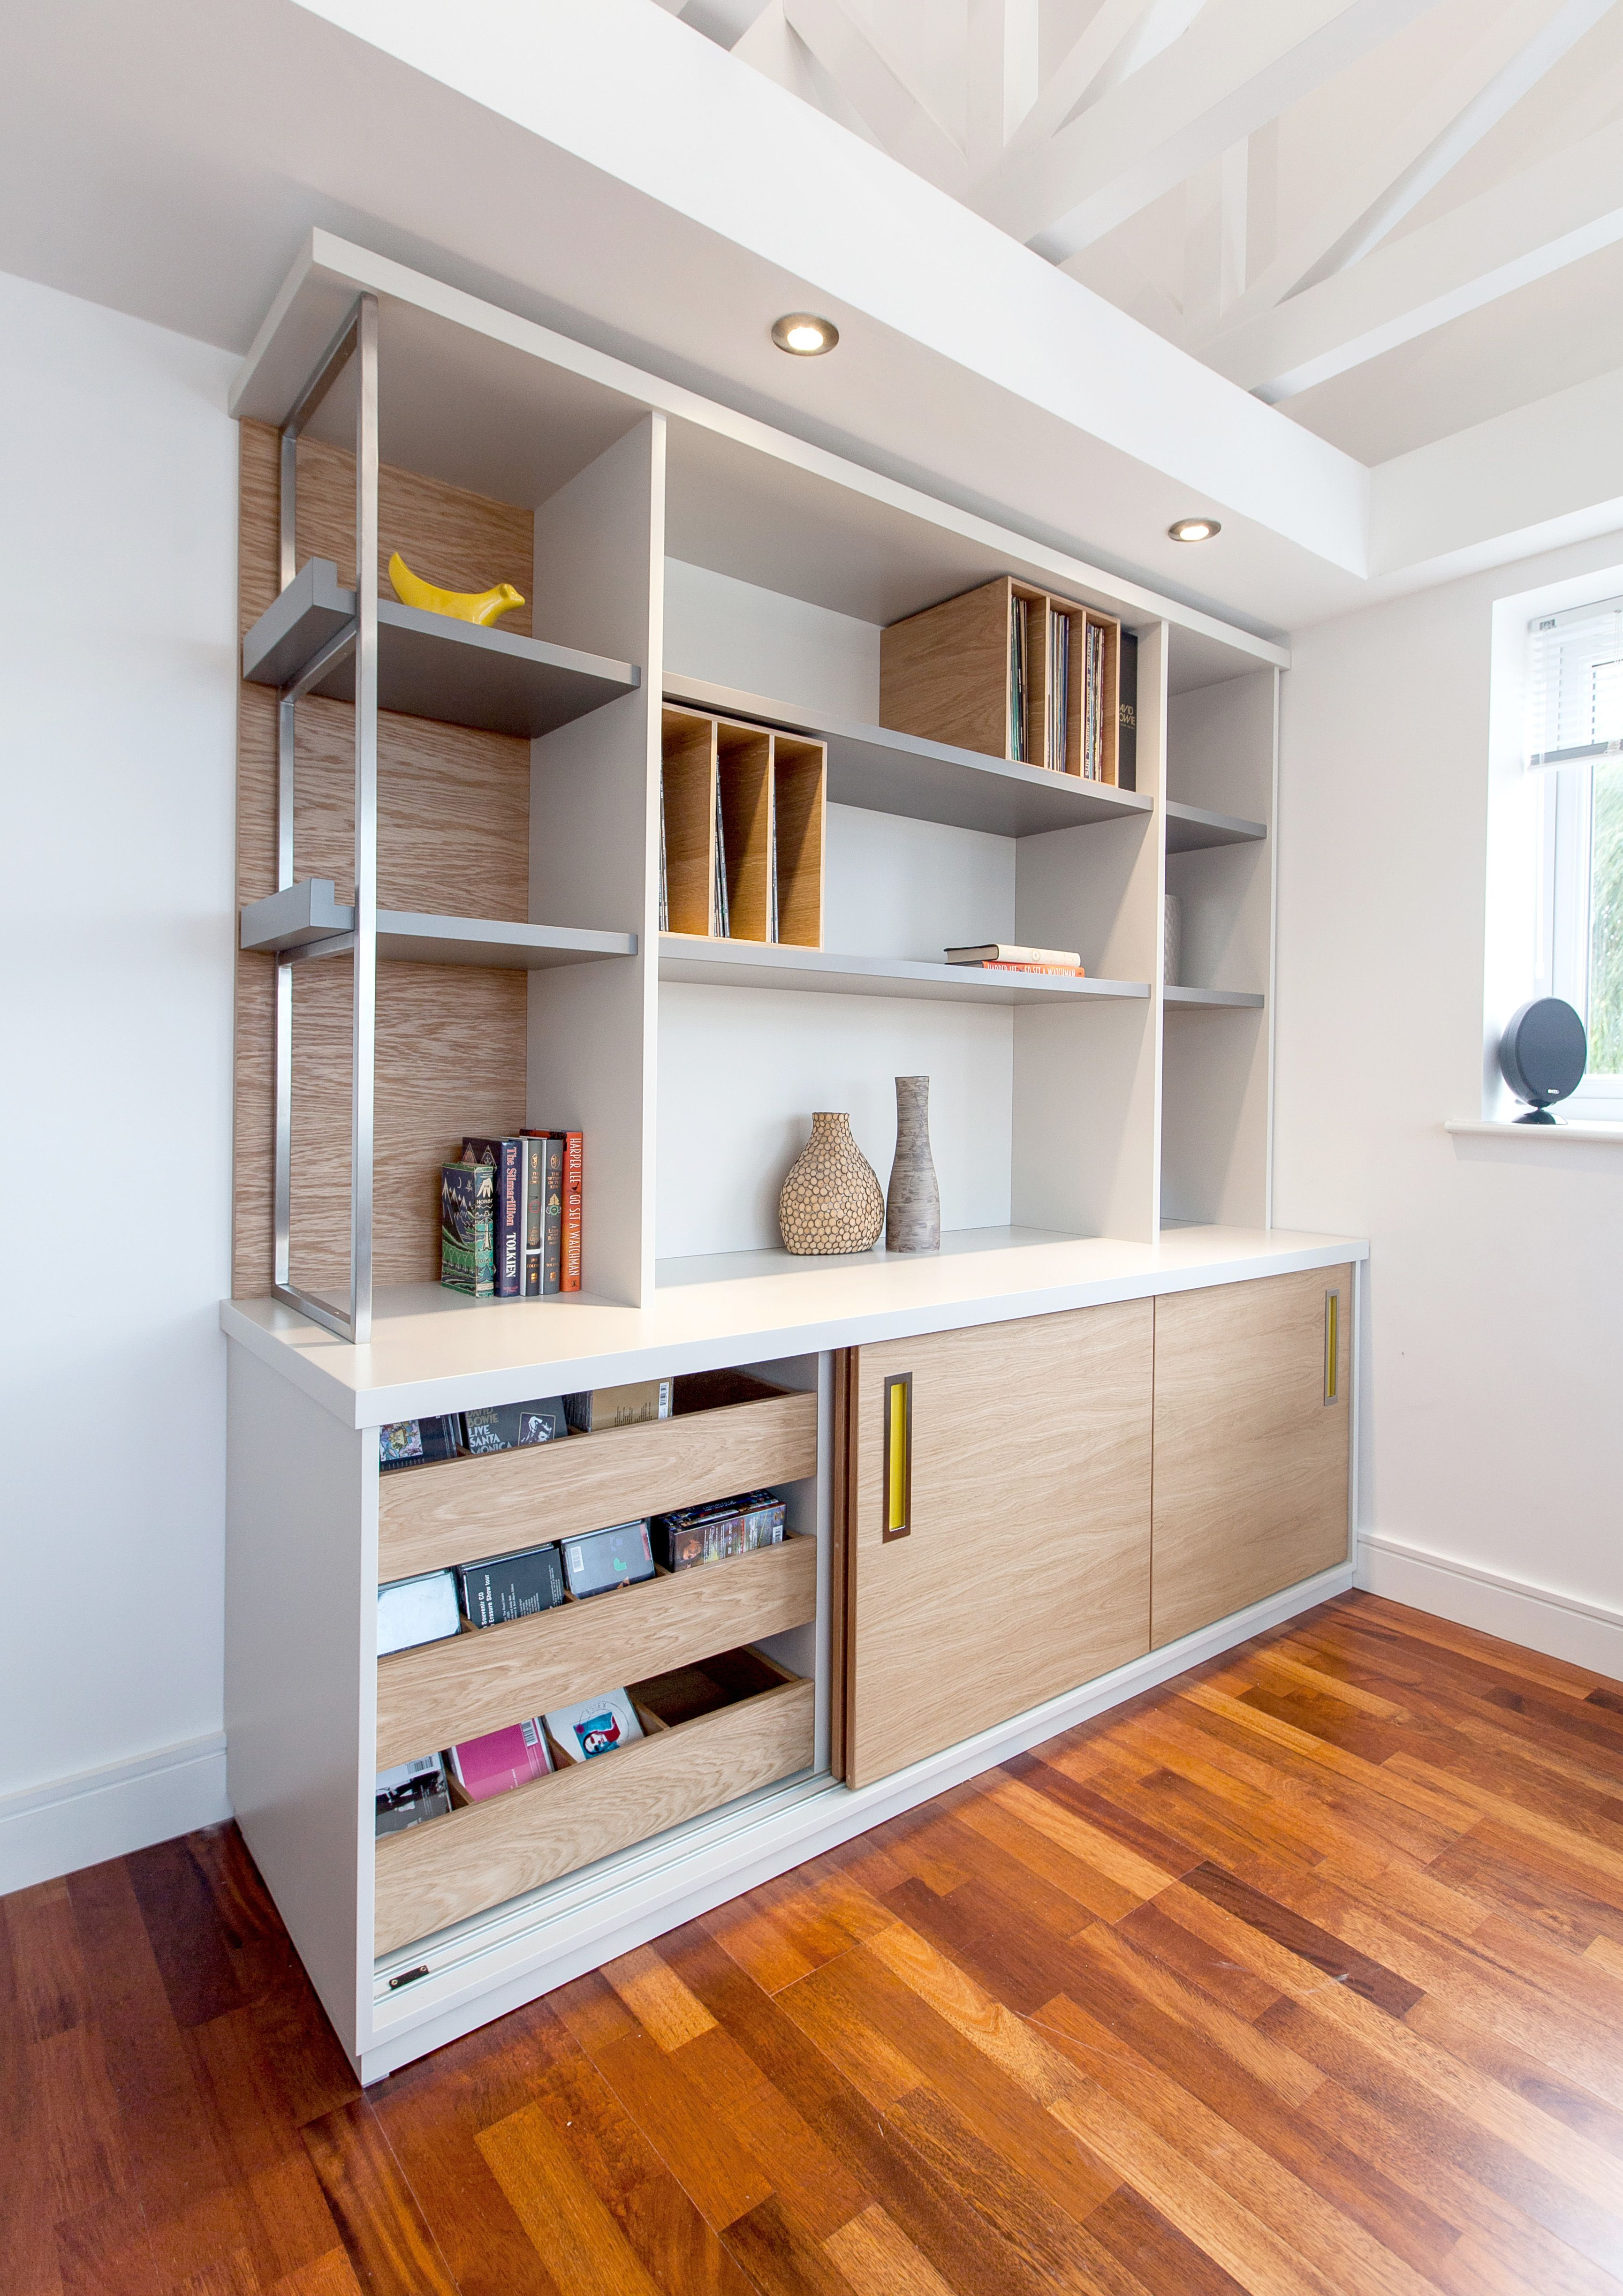 Bespoke Wall Unit In Oak Veneer And Spray Painted Finish With Stainless Steel Ladder Pods Can Be Used For Lp Storage Or Magazines Pops Of Colour From